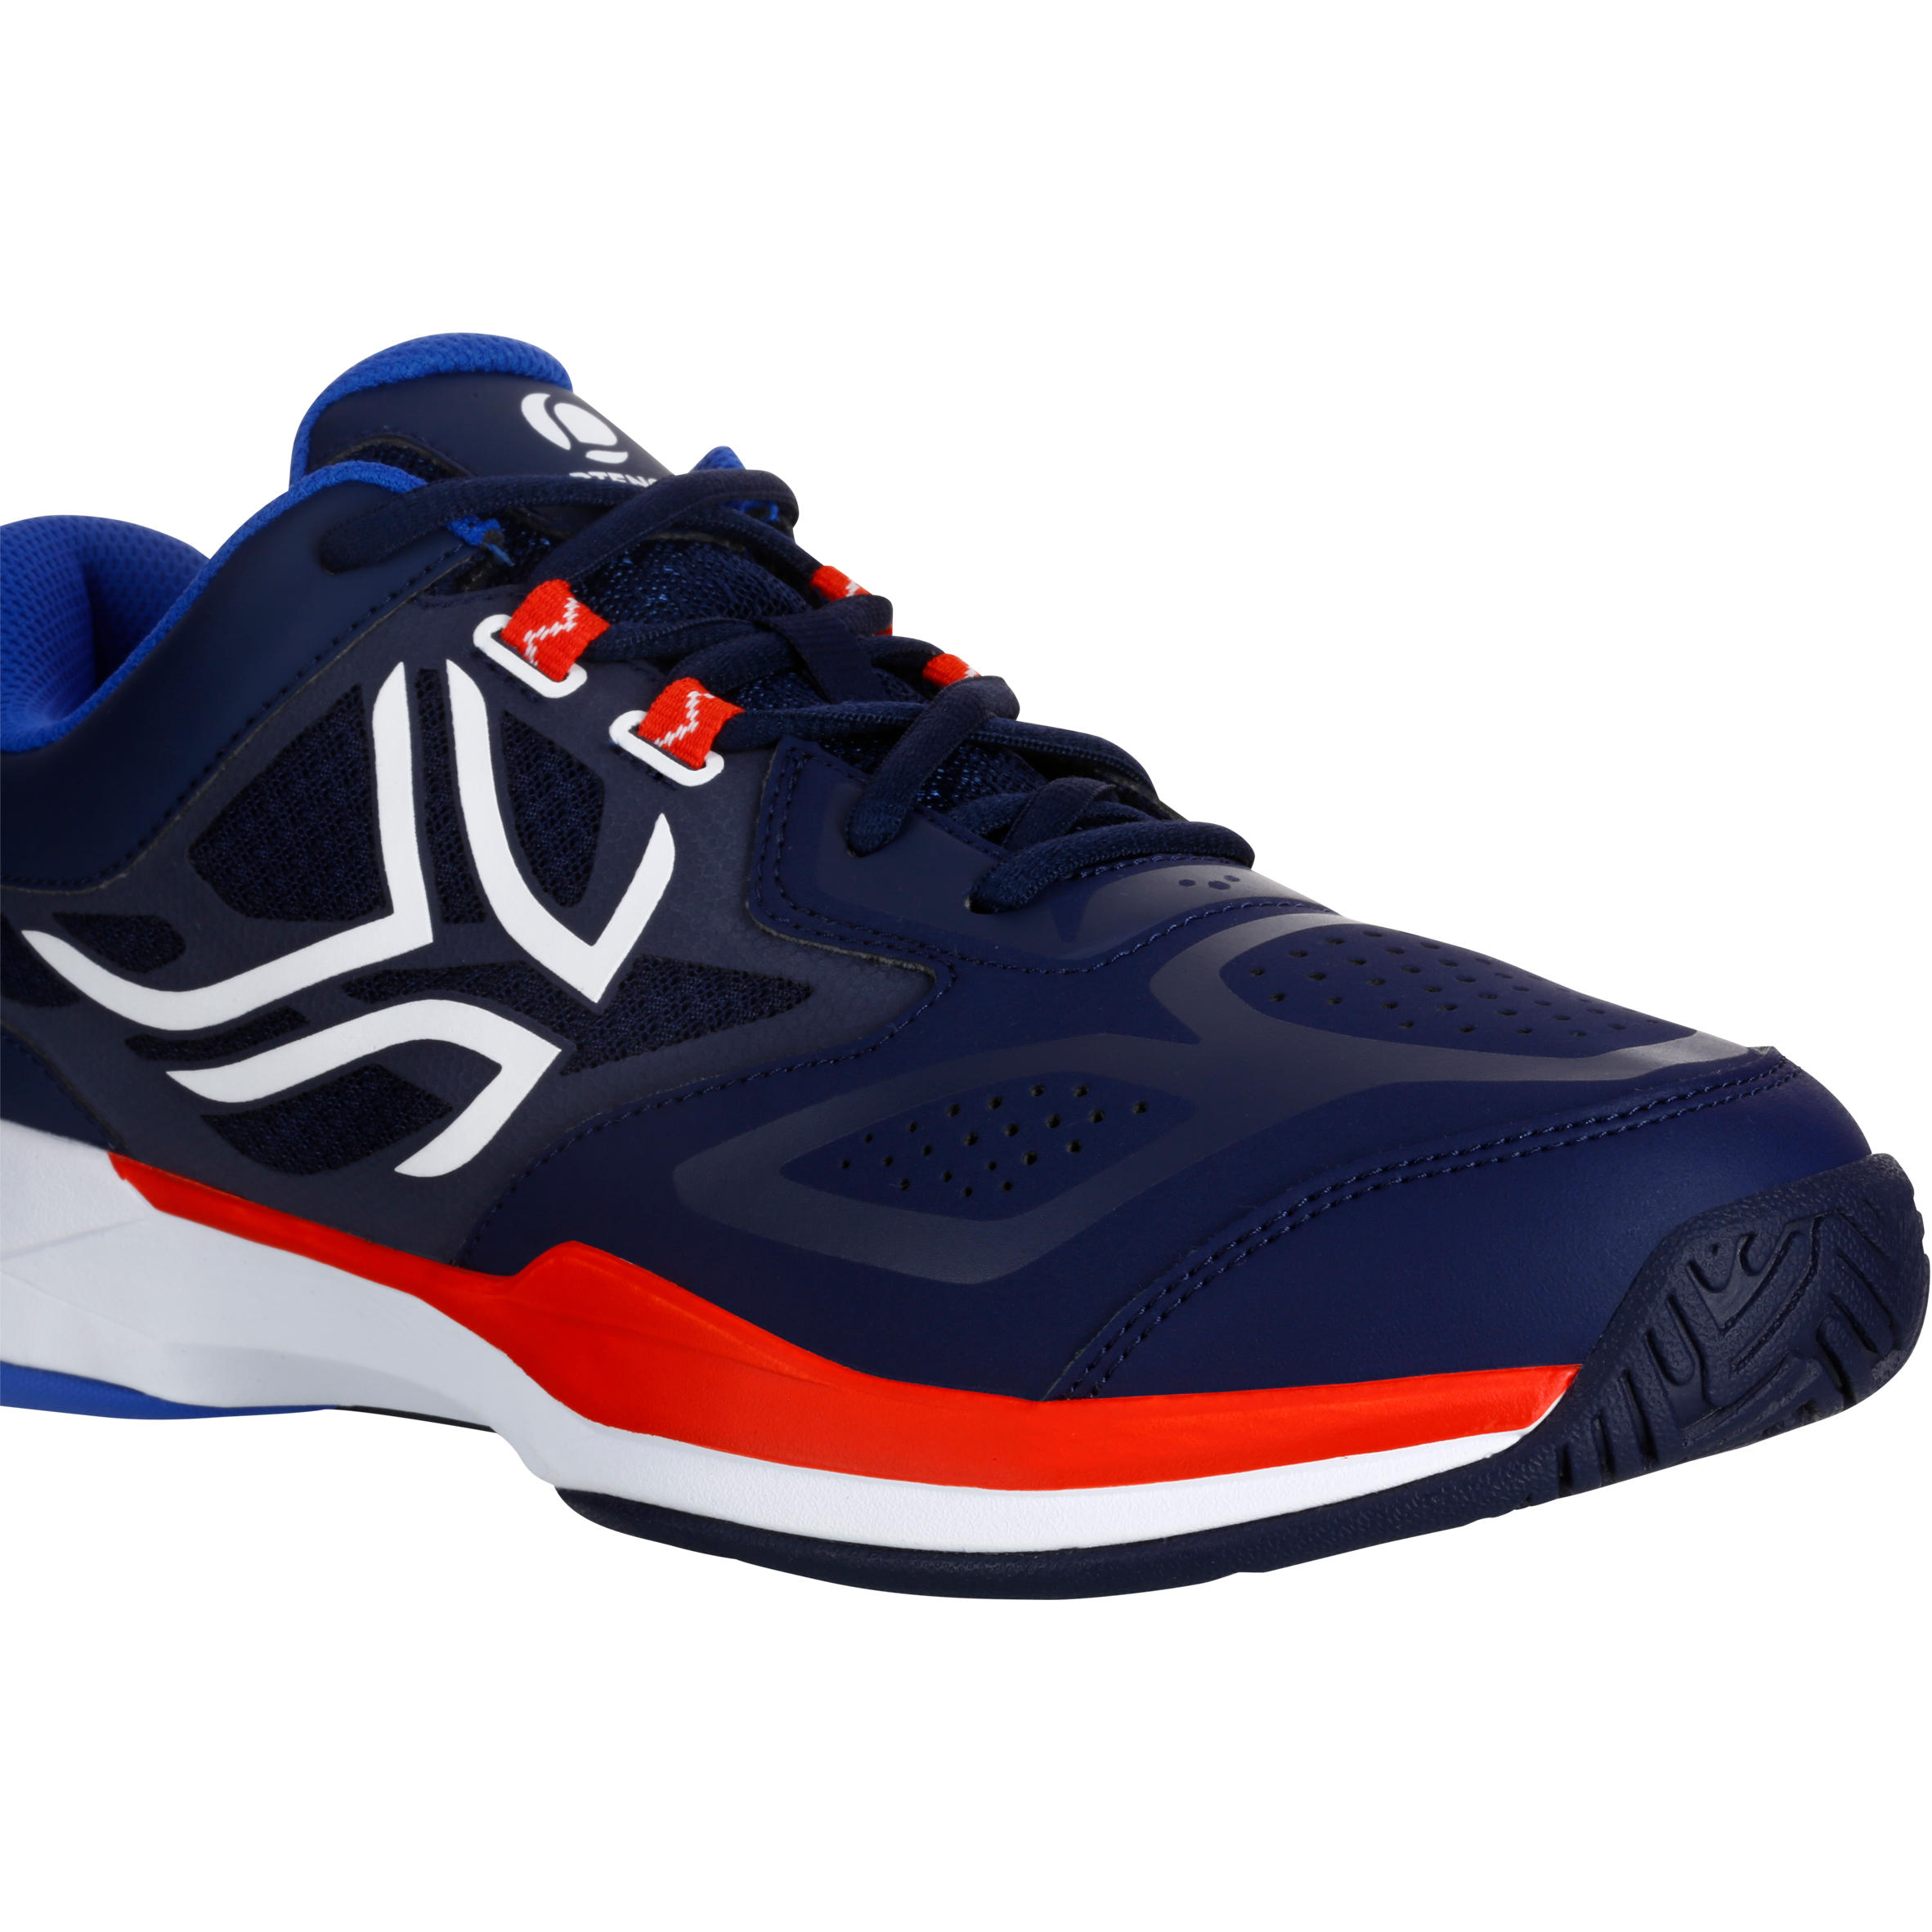 TS560 Multicourt Tennis Shoes - Navy Blue/Red